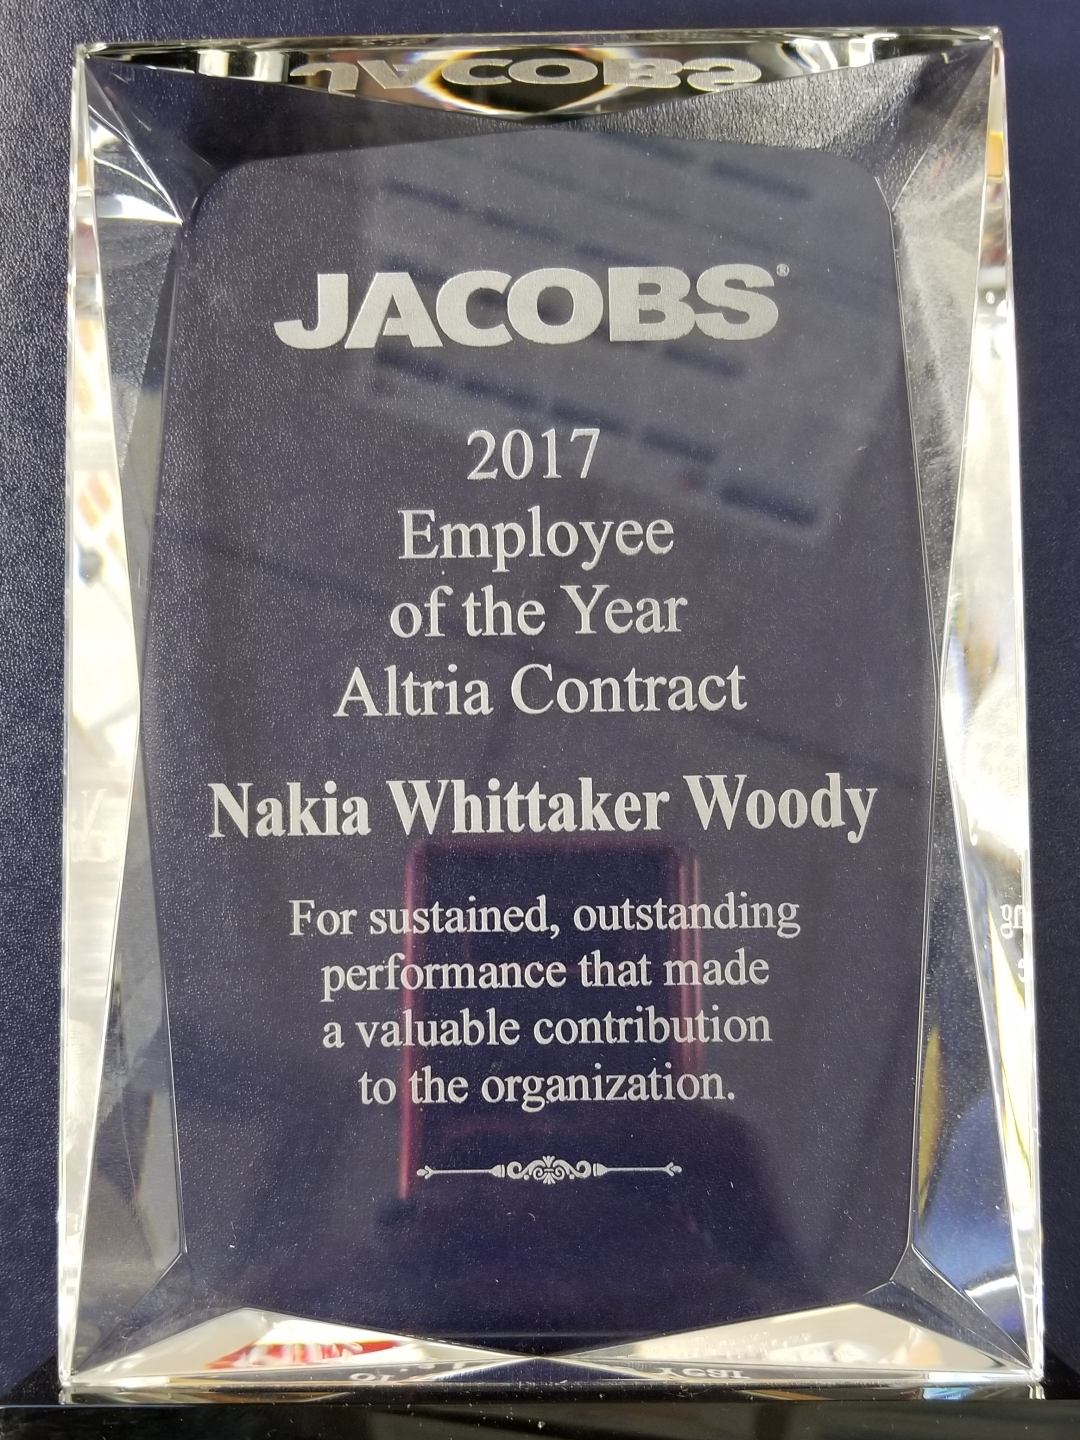 2017 Employee of the Year Altria Congtract